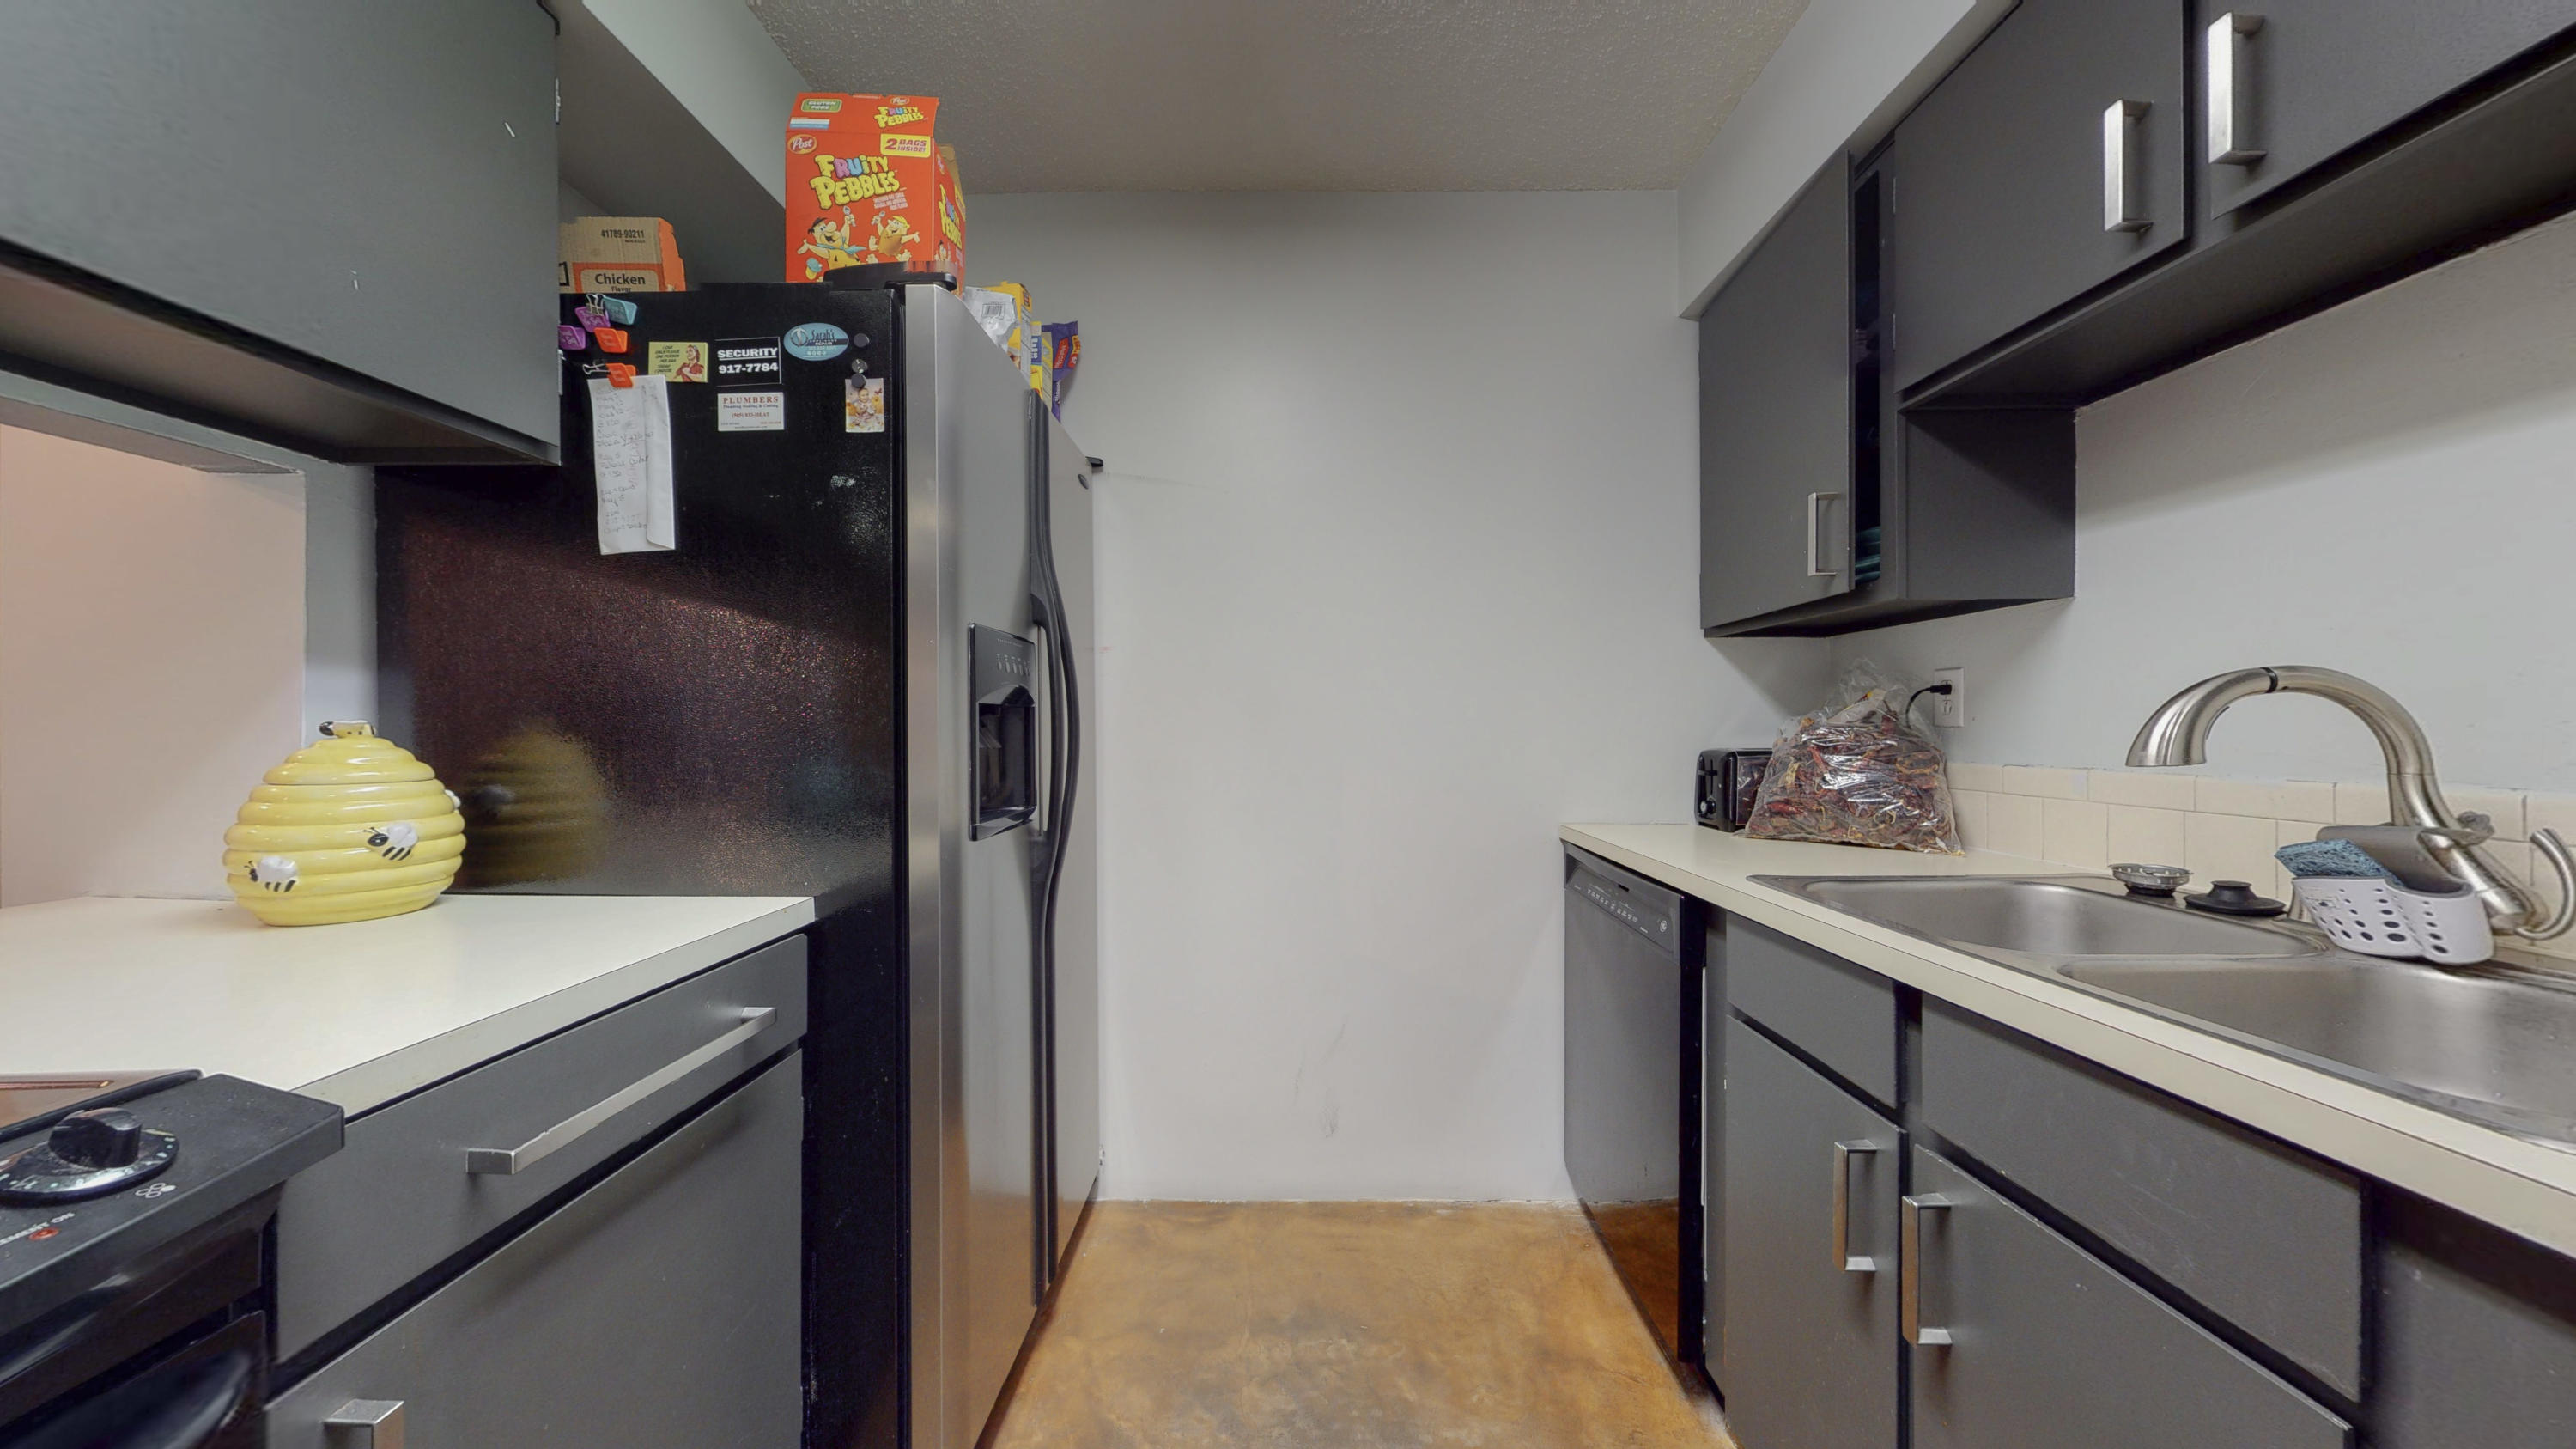 Nicely renovated 2Bedroom, 1 Bath in a NE Heights gated community! Fresh paint. All appliances convey in property. Open space living/dining and kitchen. HOA includes: pool, clubhouse with exercise room and pool table, playground, dog park, security and water. Come make this condo yours today!!